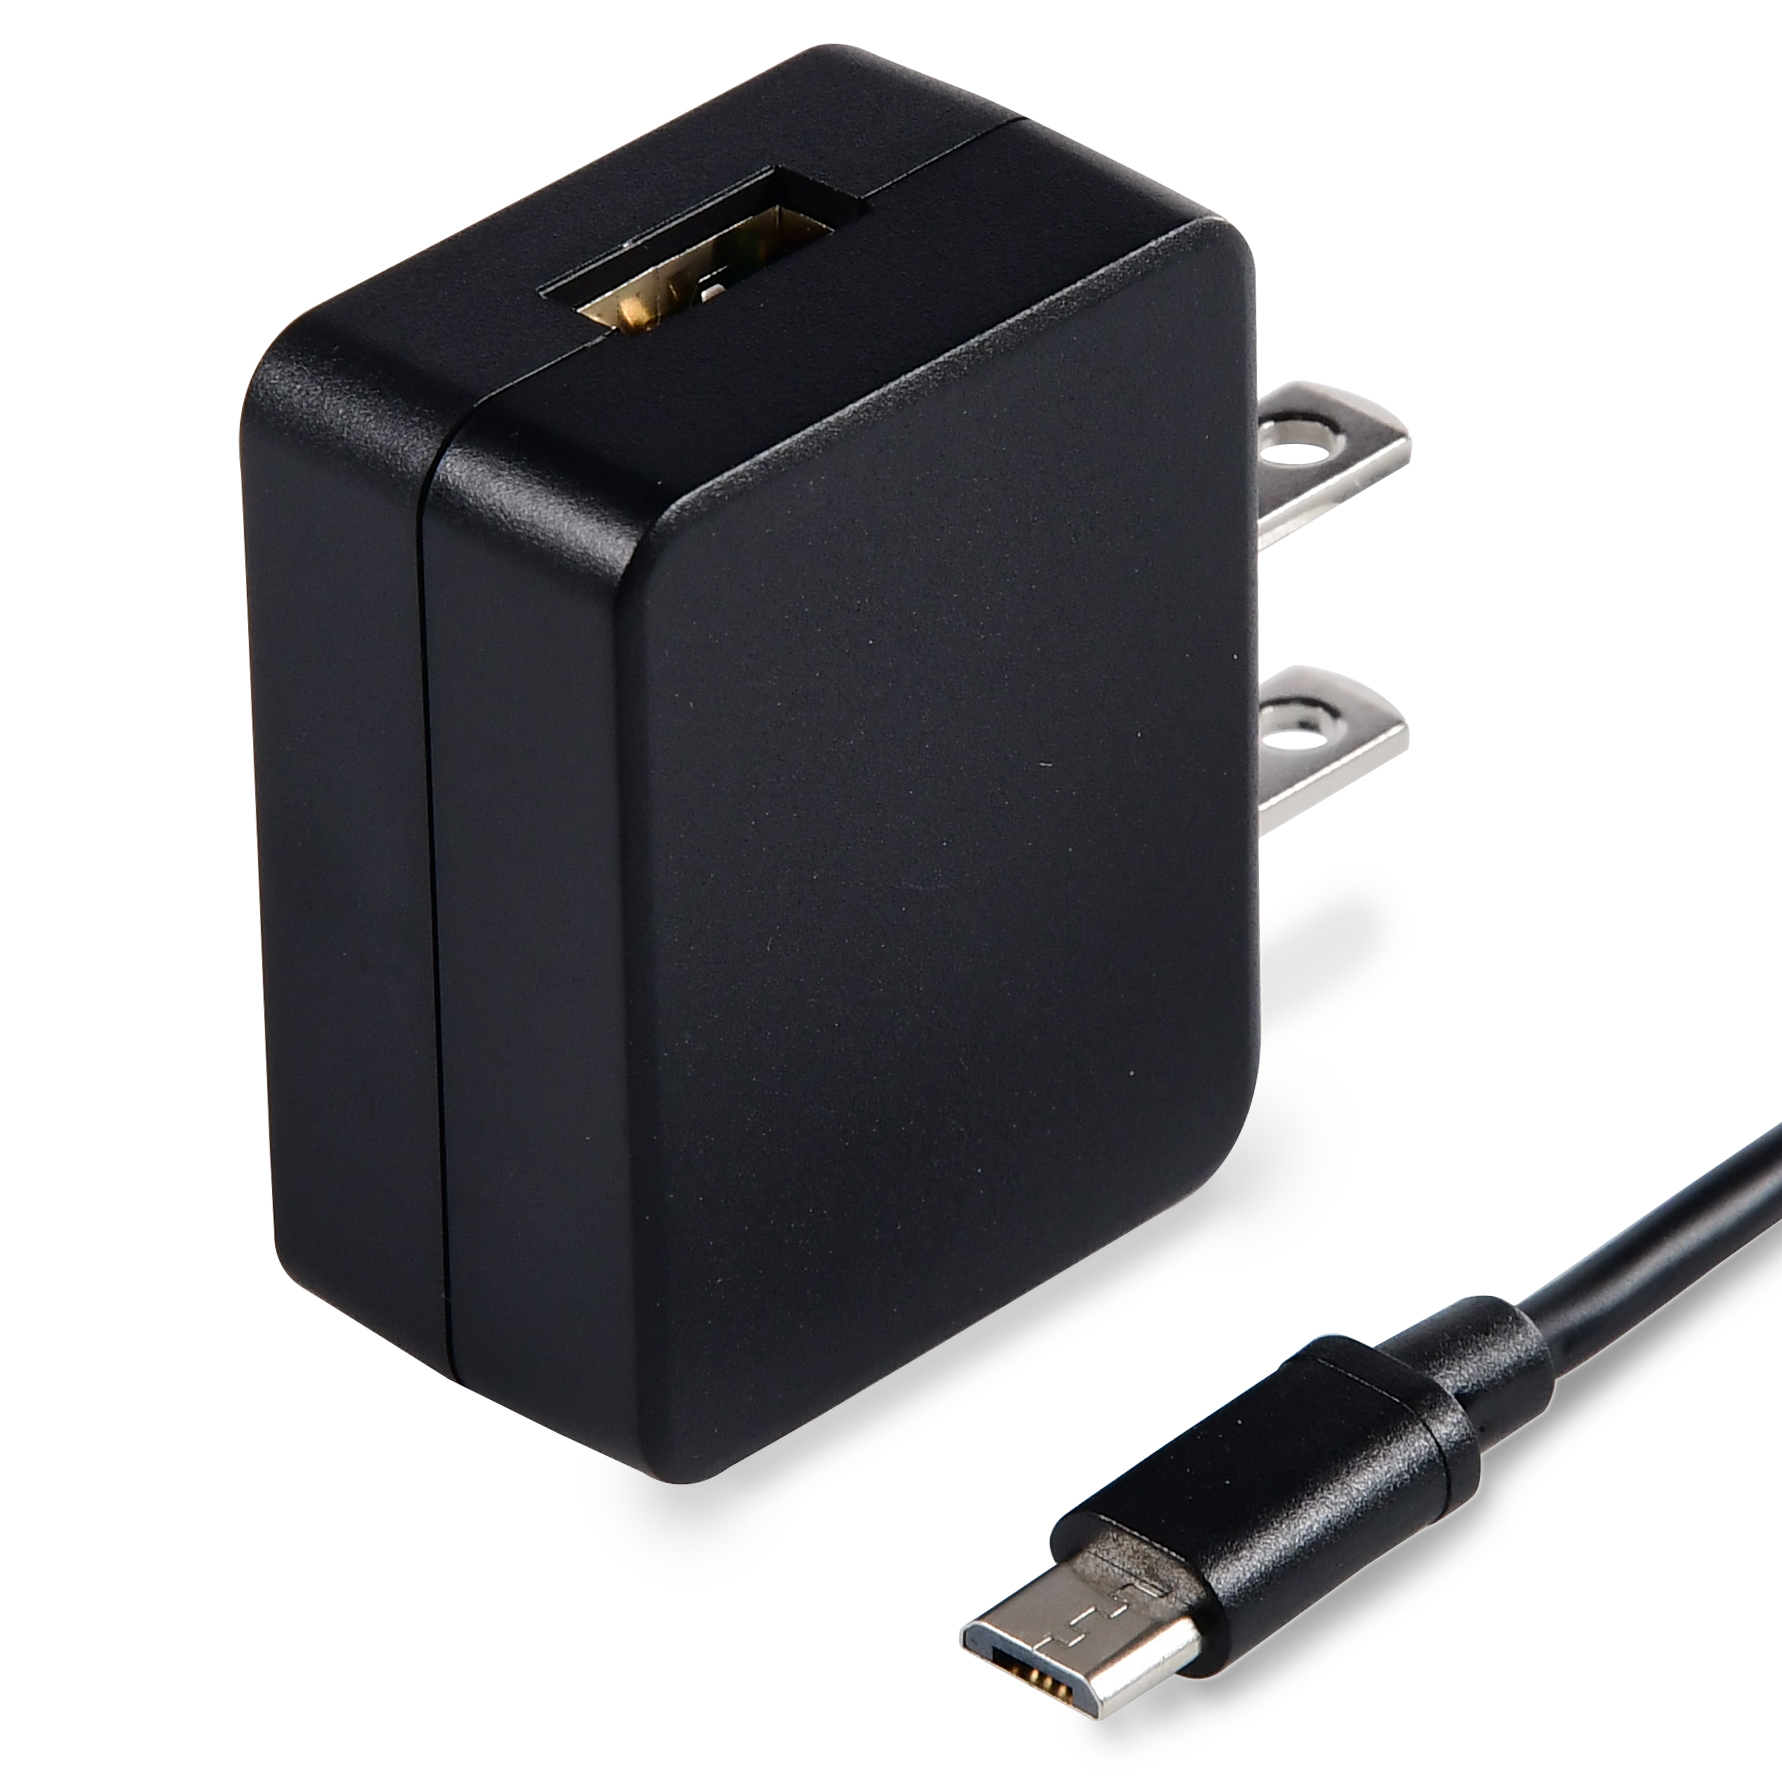 Onn by Walmart wall charger 2.1a with 3ft micro usb cable, black